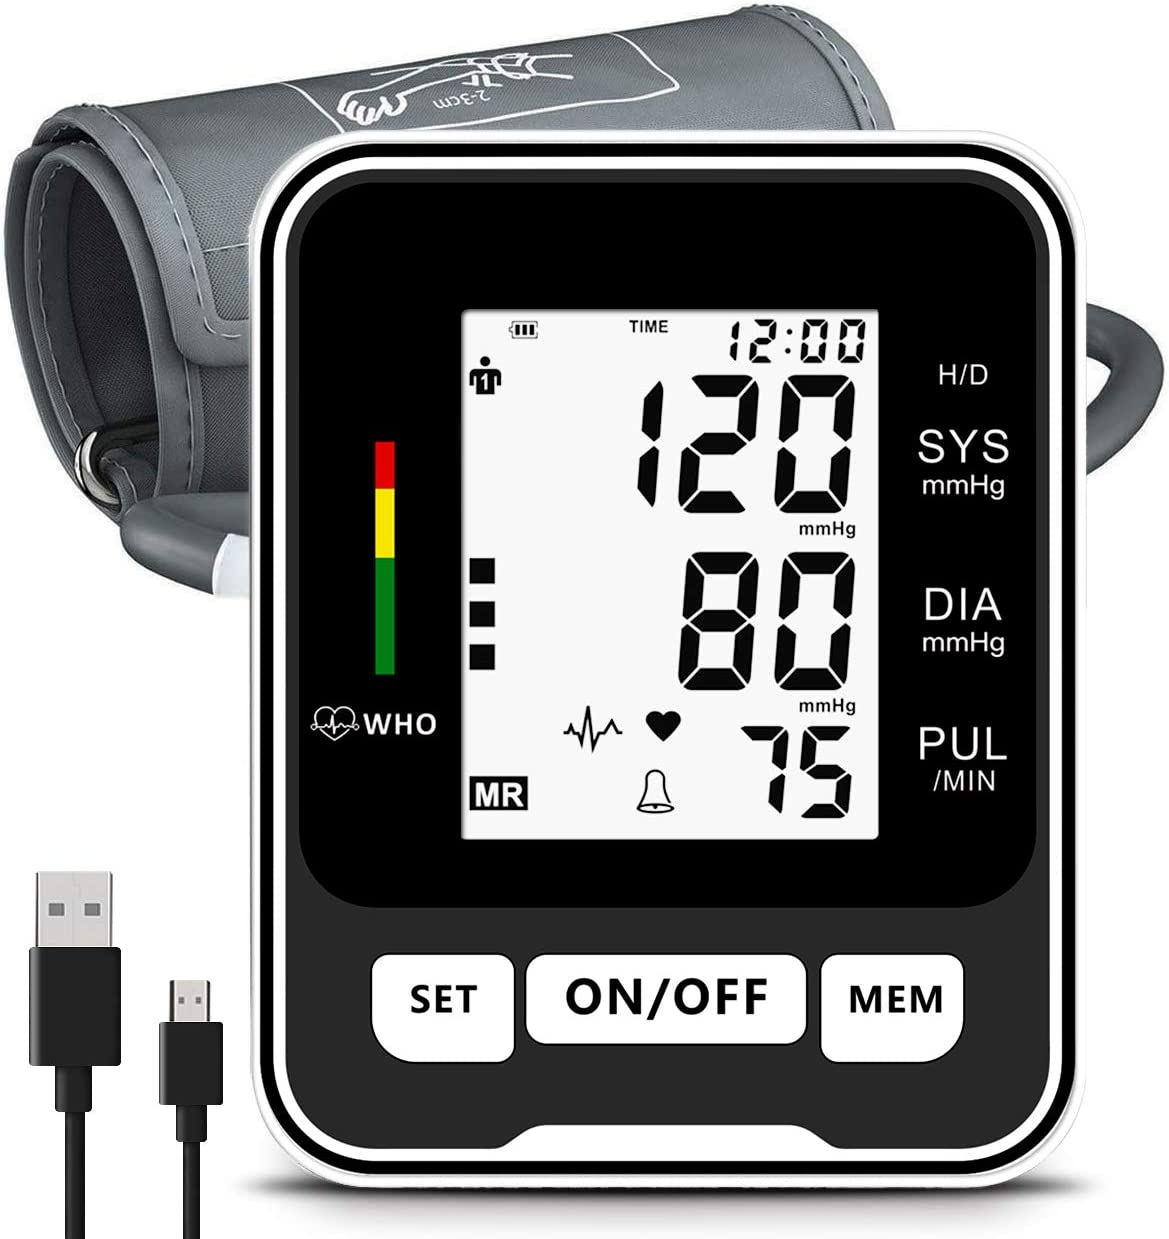 Blood Pressure Monitor for Upper Arm,Fast Reading Health Monitor with LCD Display and Voice Function for Home Use,44cm Replacement Blood Pressure Monitor Cuff,Storage Travel Case